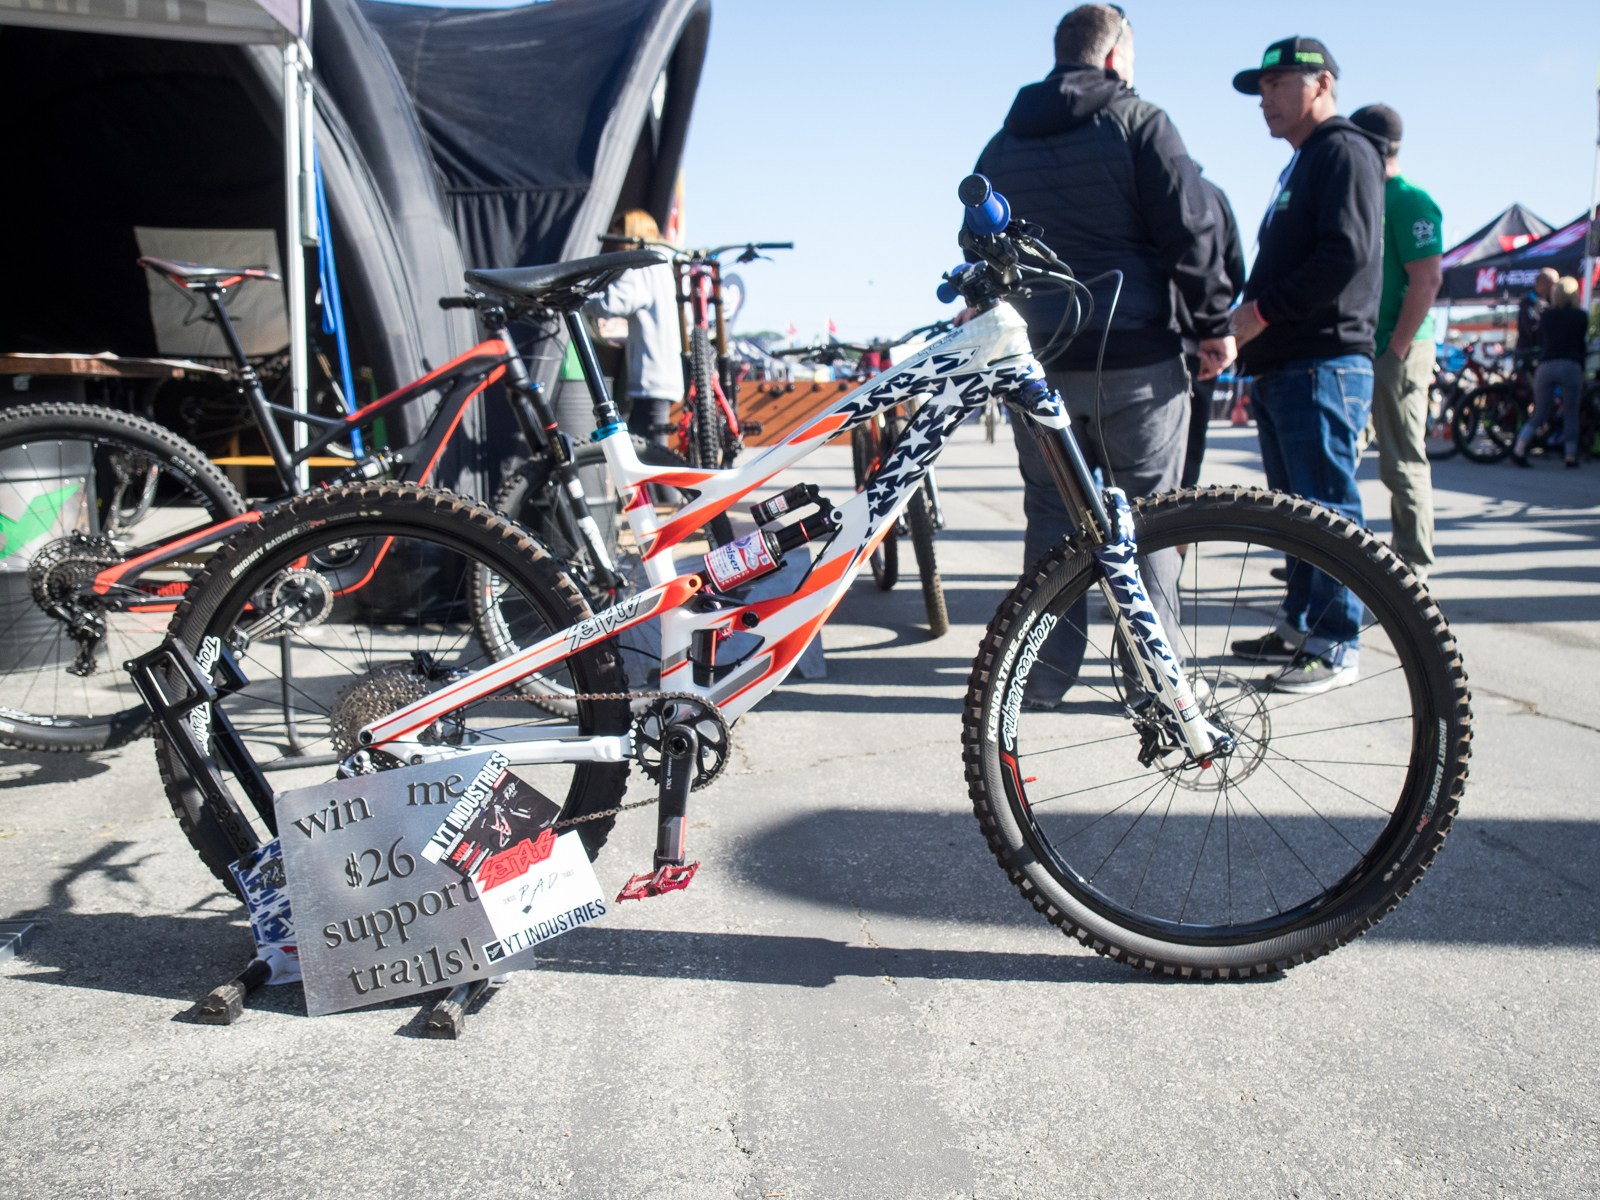 Cam Zink's red, white and blue bike that debuted at Crankworx last year in Whistler was up fro auction to support the local Norcal trails.